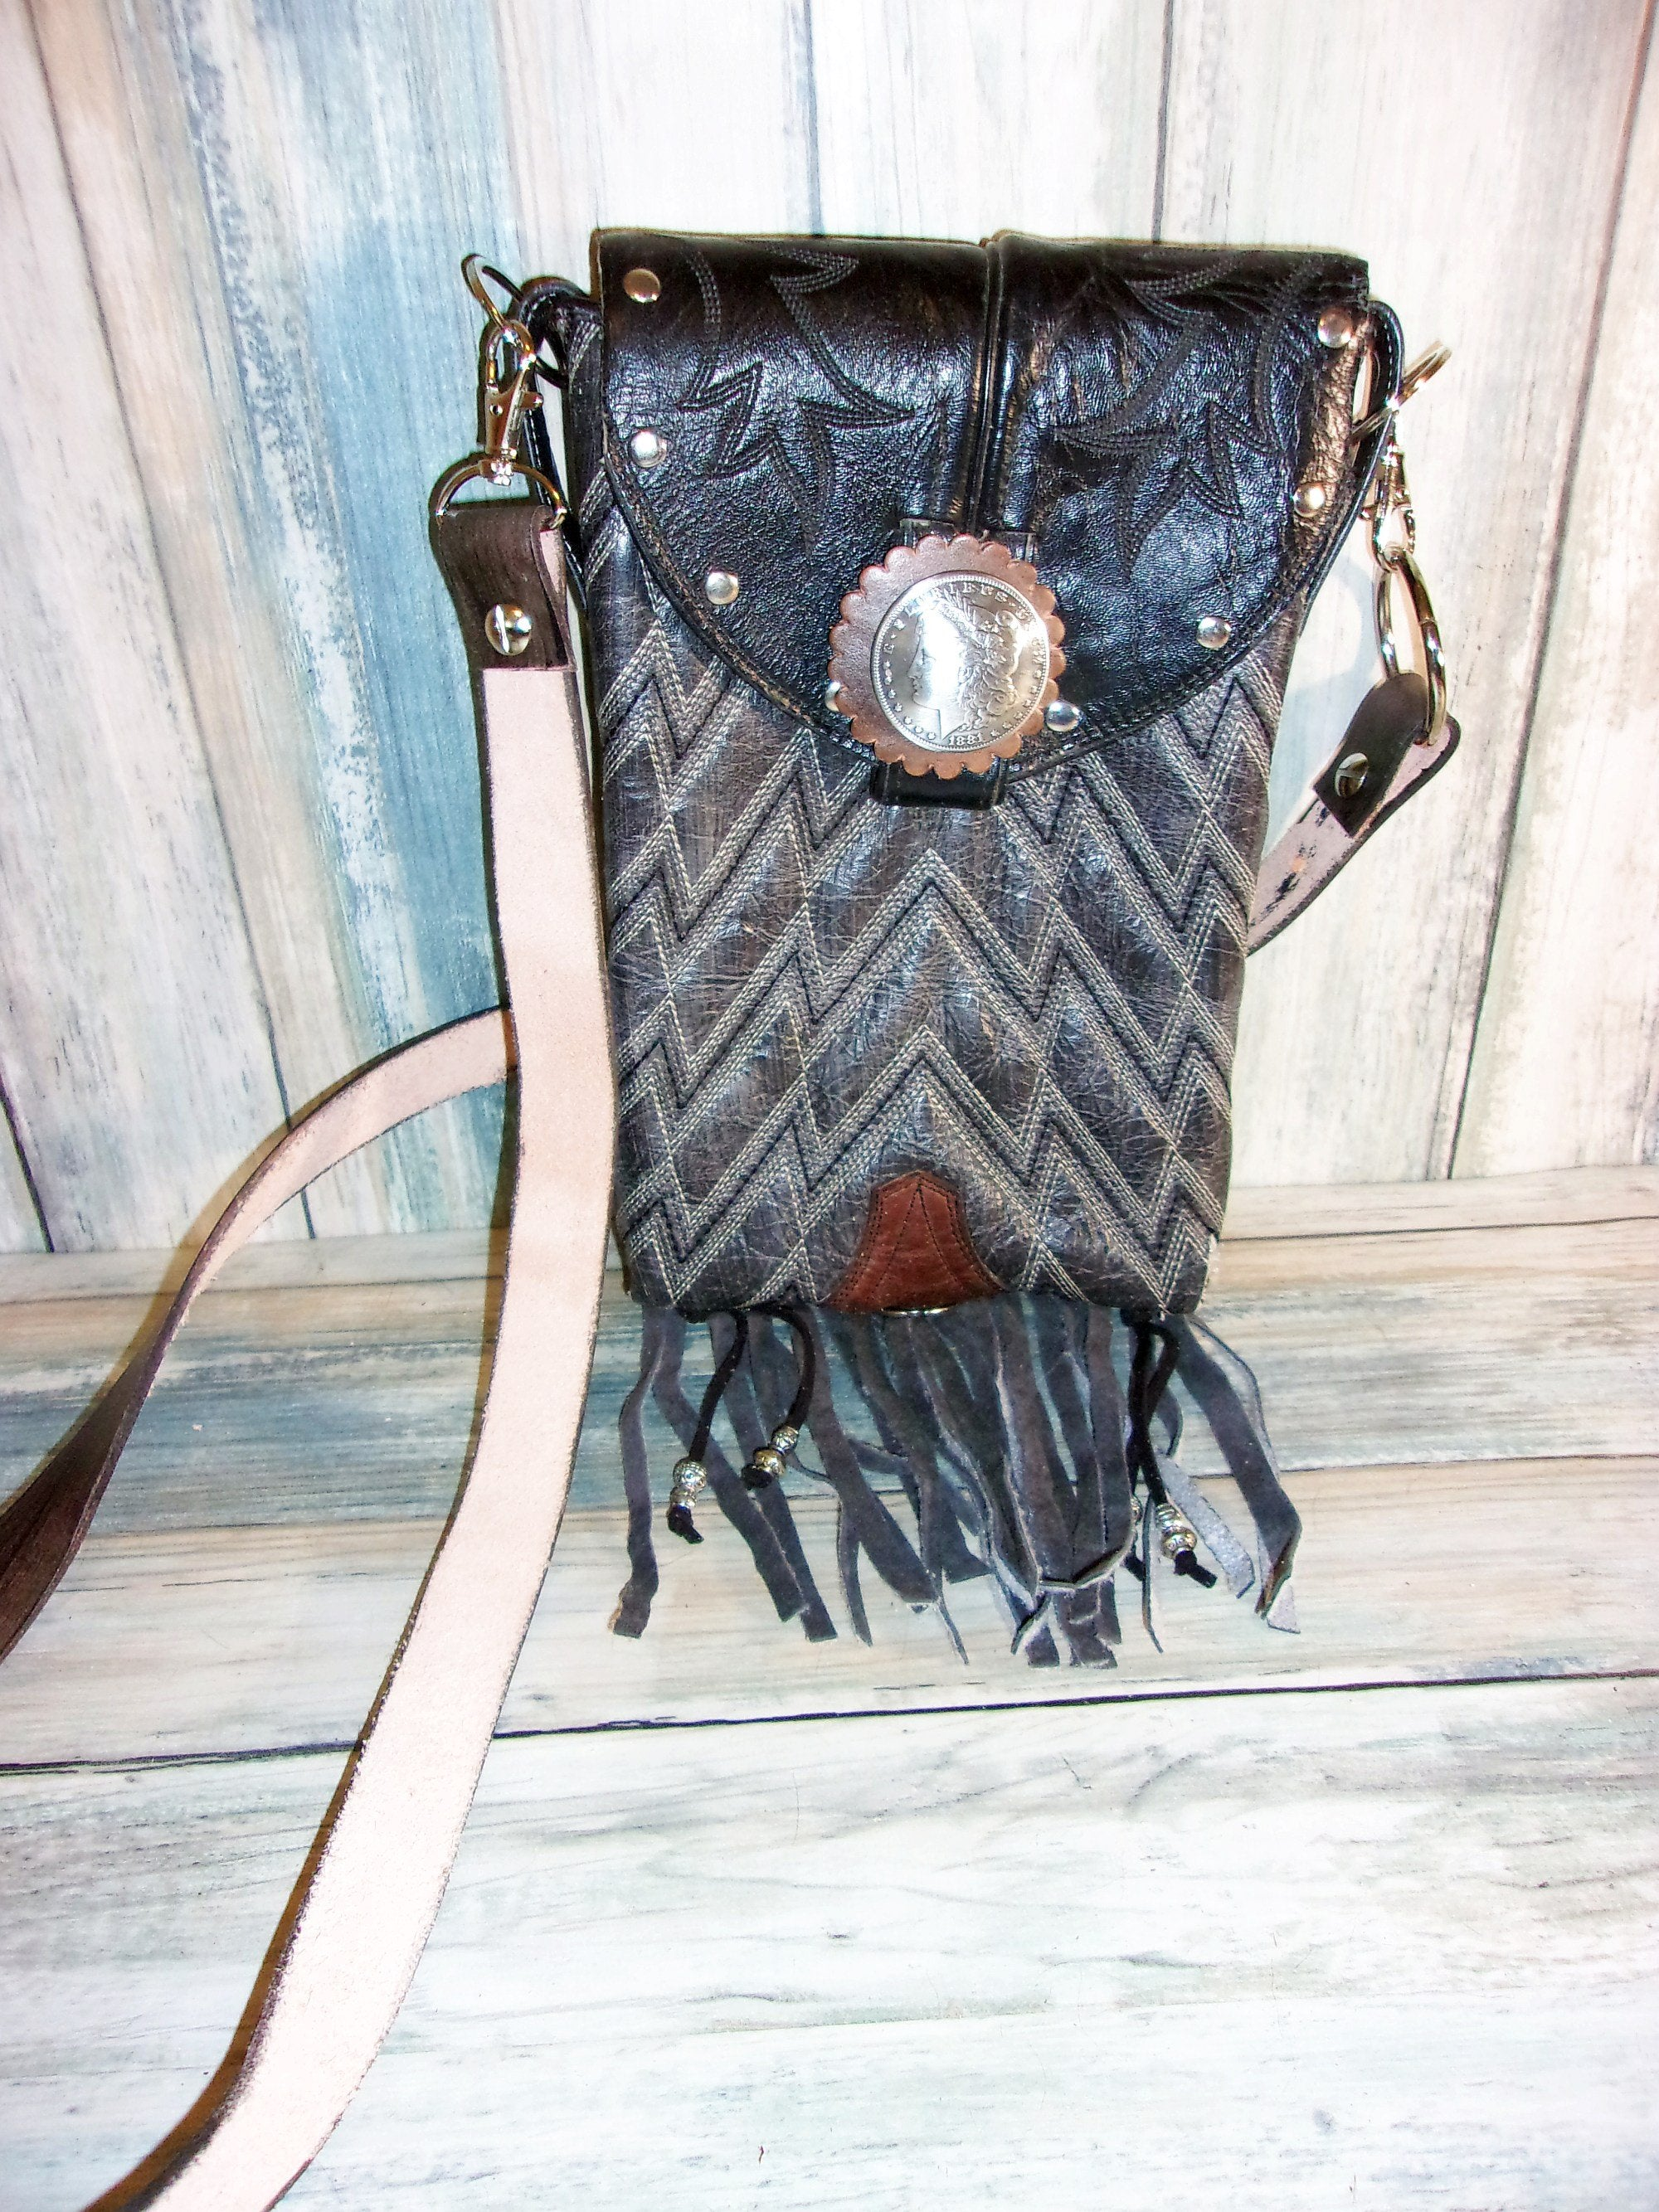 Biker Thigh Purse - Biker Crossbody Bag - Cowboy Boot Purse - Convertible Purse BB04 - handcrafted handbags - cowboy boot purses - western purses - western handbags - western conceal carry purses - unique swing arm bags - Chris Thompson Bags